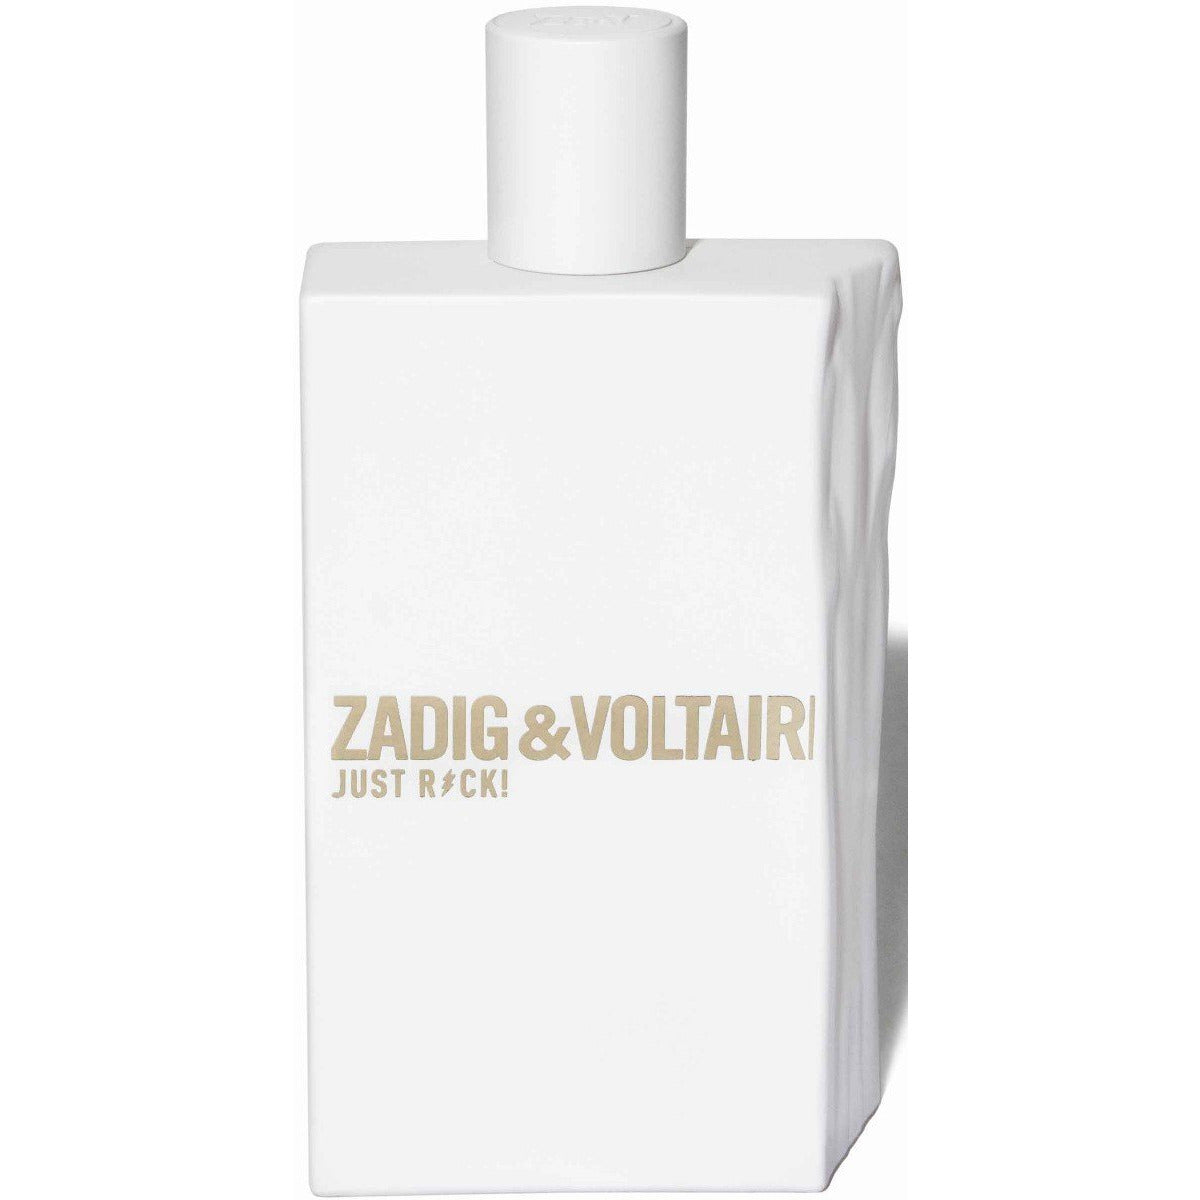 Zadig & Voltaire Just Rock by Zadig & Voltaire perfume for her EDP 3.3 / 3.4 oz New Tester